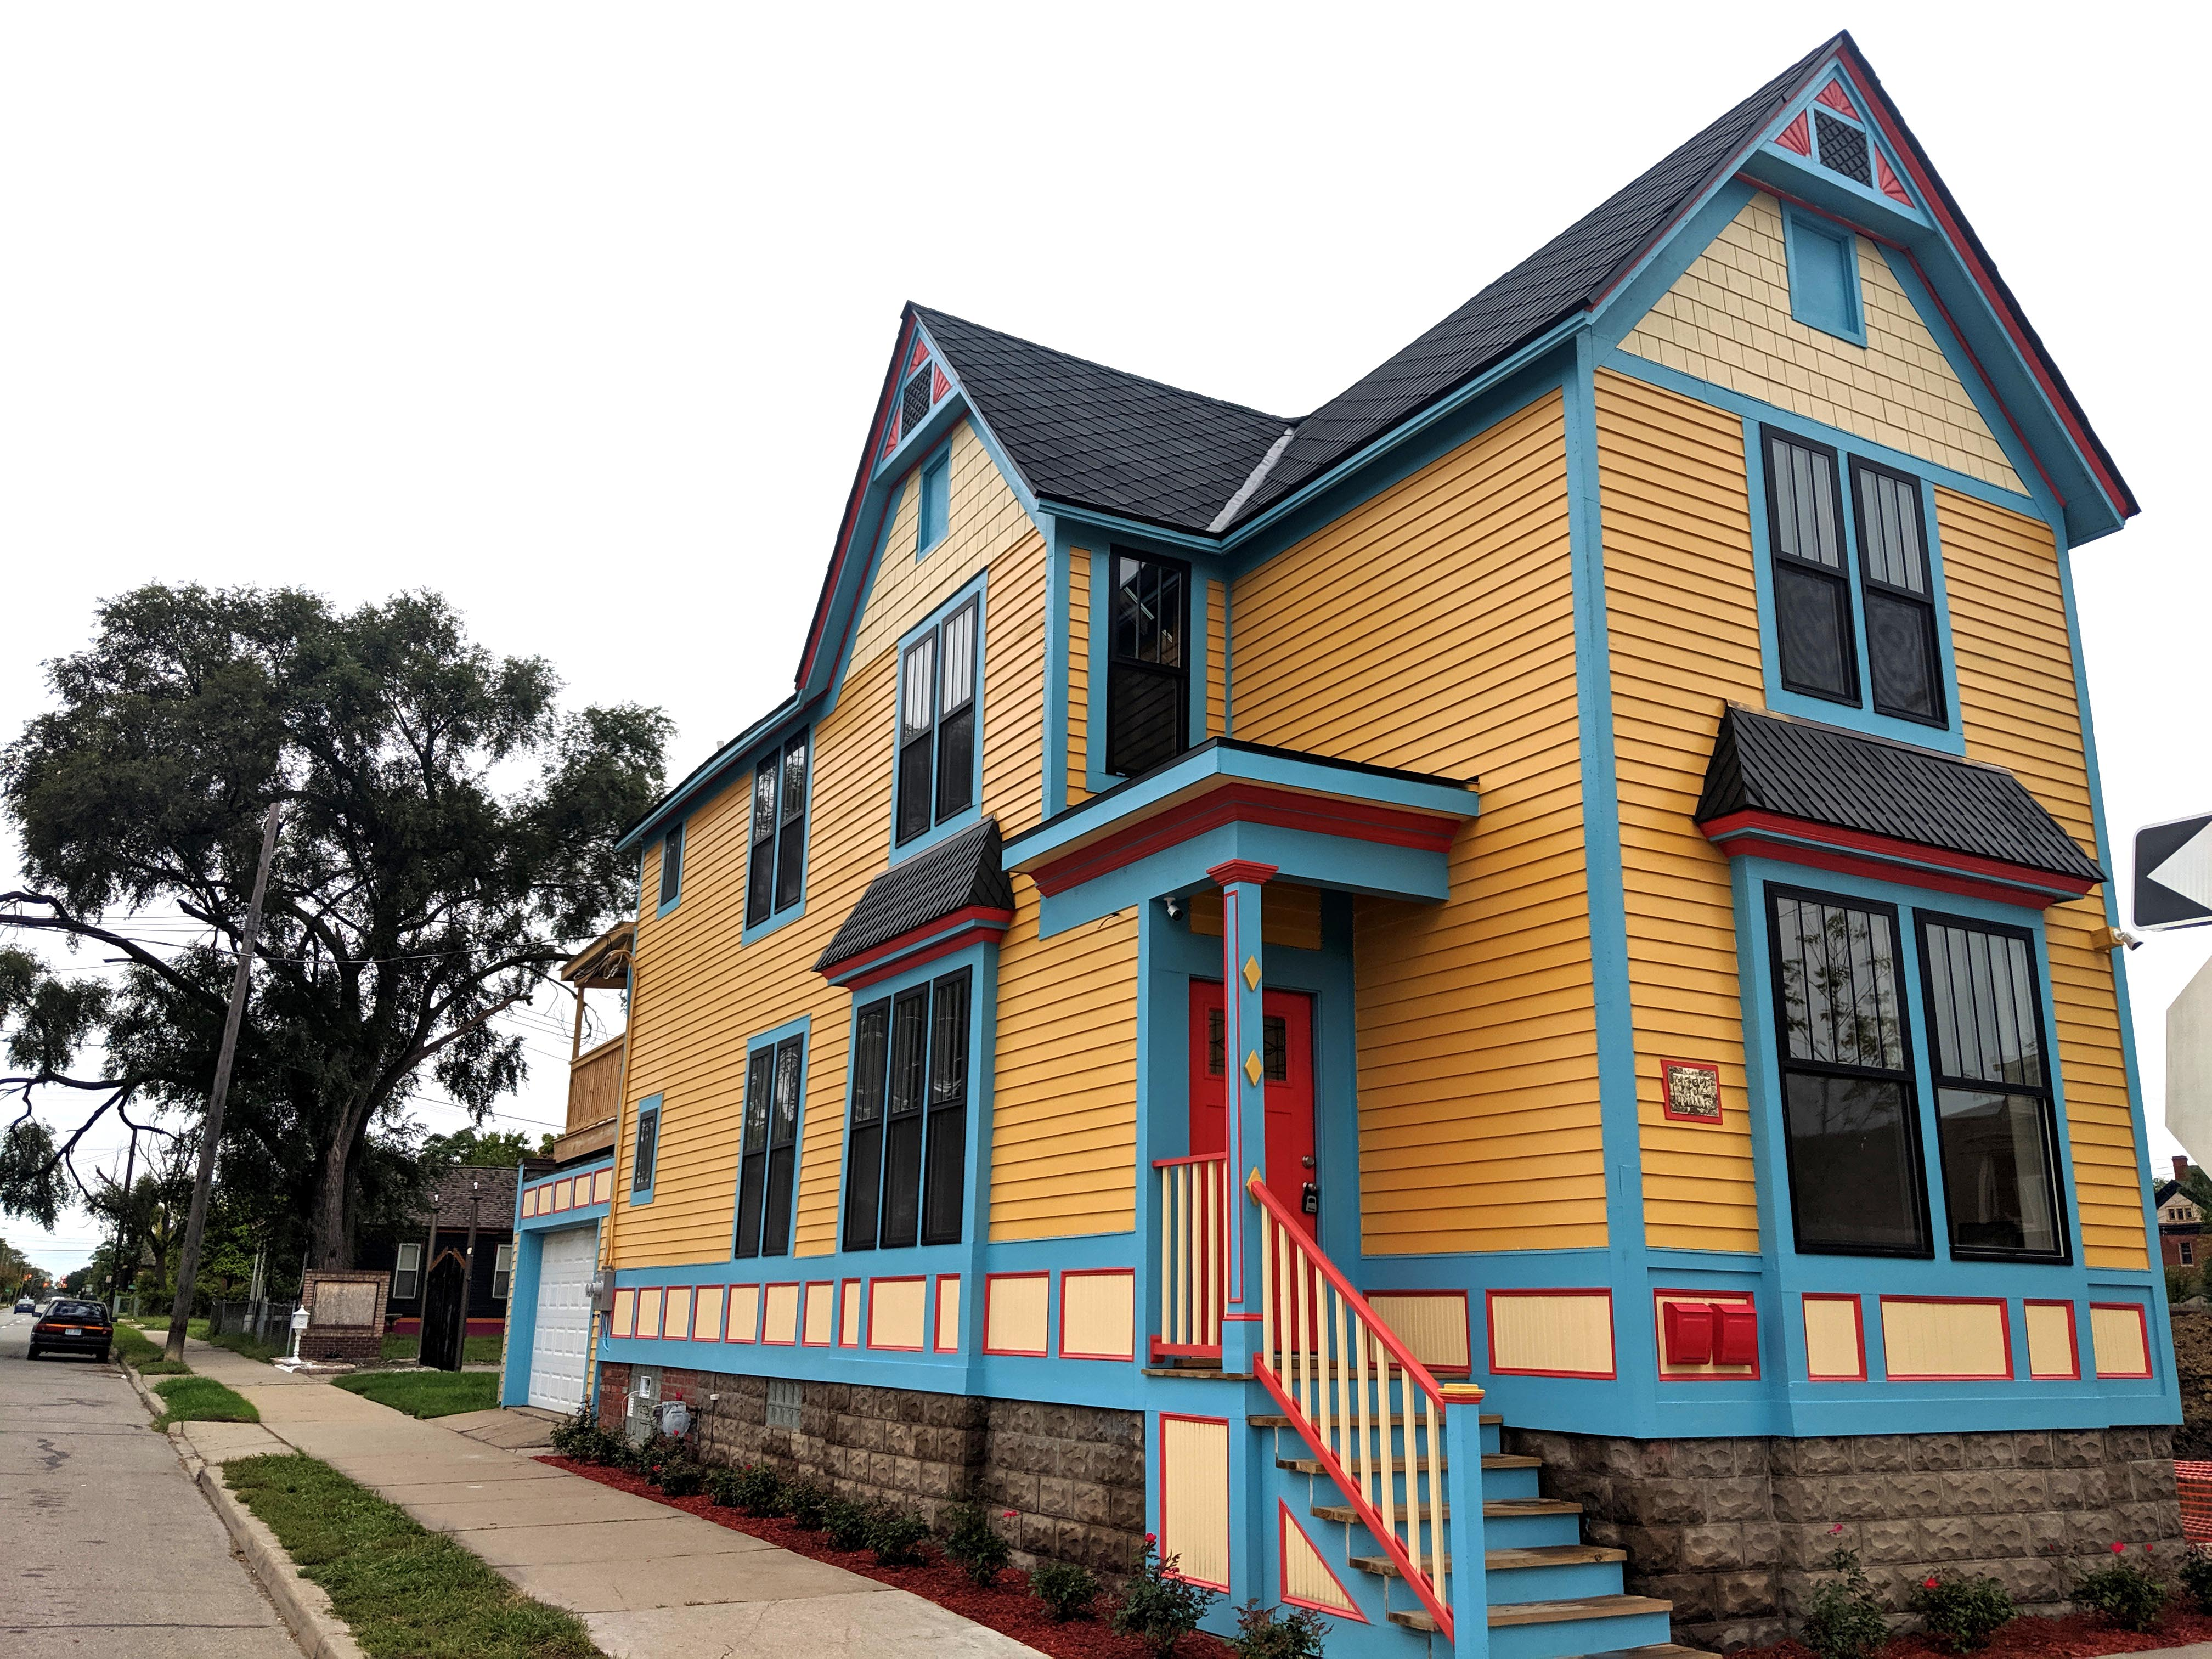 A colorfully-painted three-story home with yellow siding and blue trim. There's two gables on the front and side.